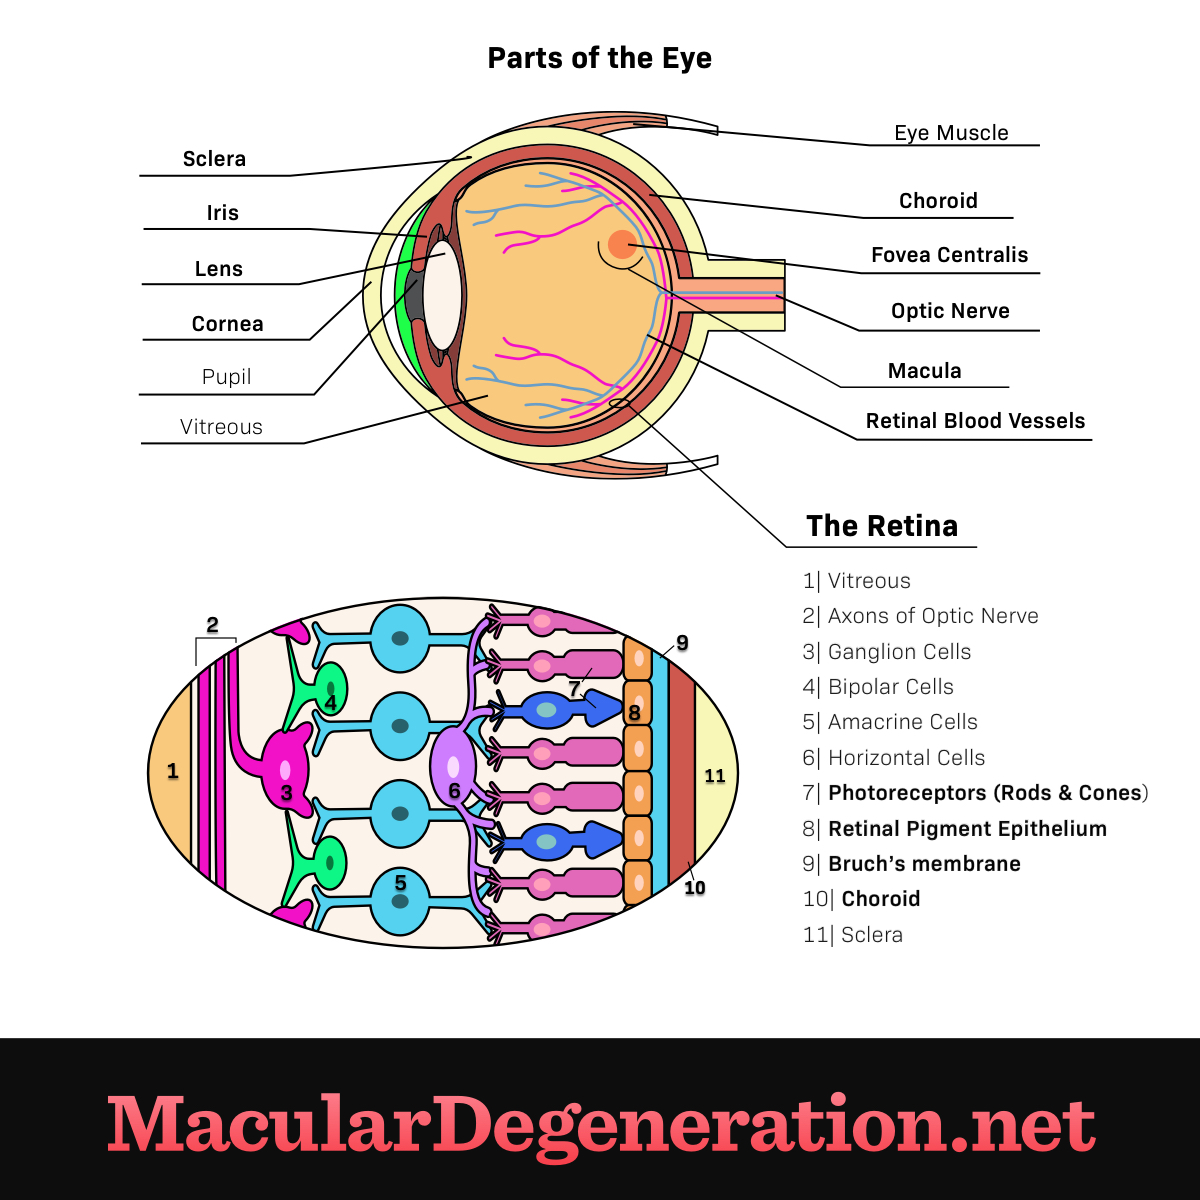 parts of the eye including the iris, lens, choroid, and a more in depth view of the components of the retina